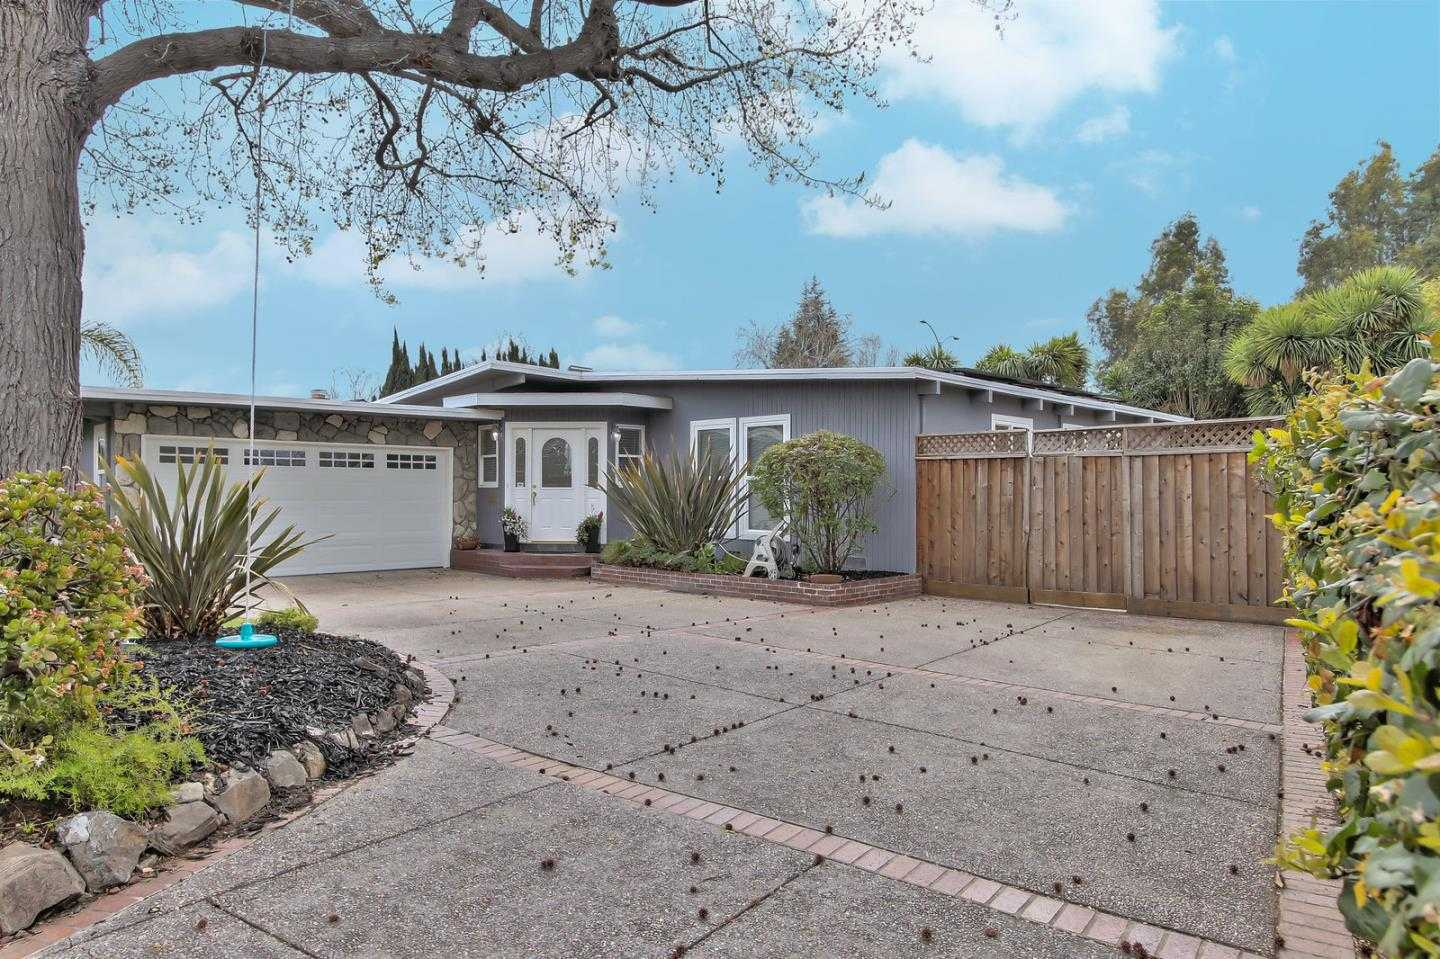 $2,298,000 - 3Br/2Ba -  for Sale in Sunnyvale